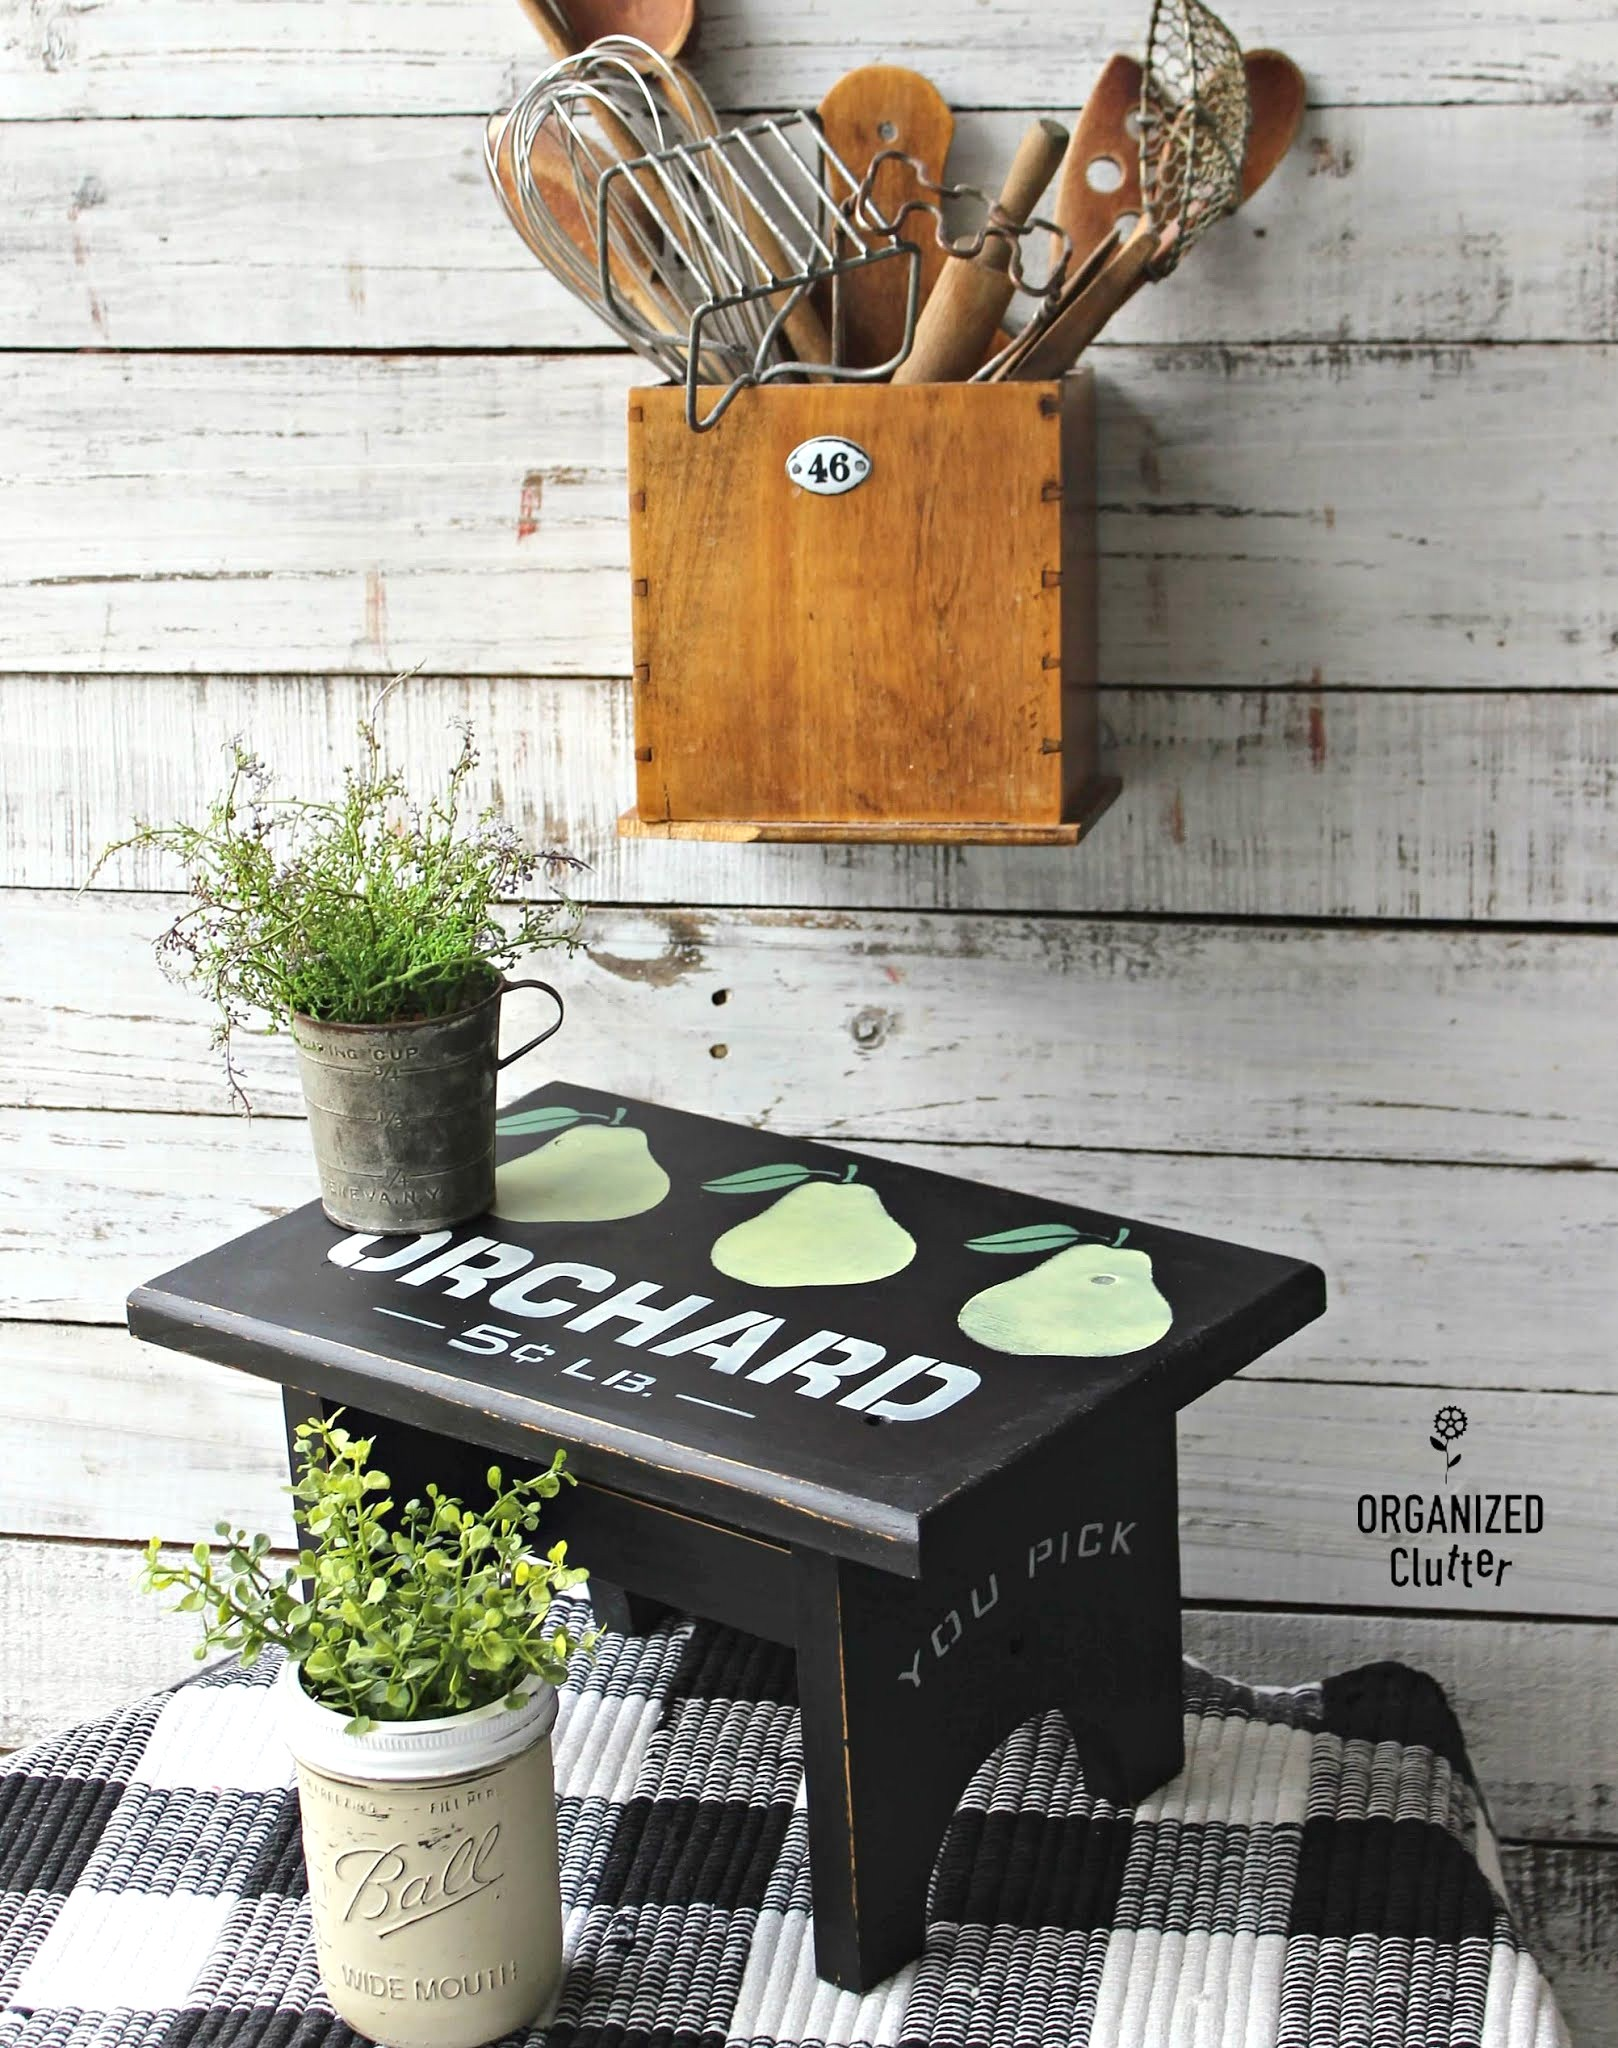 Pear Orchard stool by Organized Clutter, featured on DIY Salvaged Junk Projects 555 on Funky Junk!